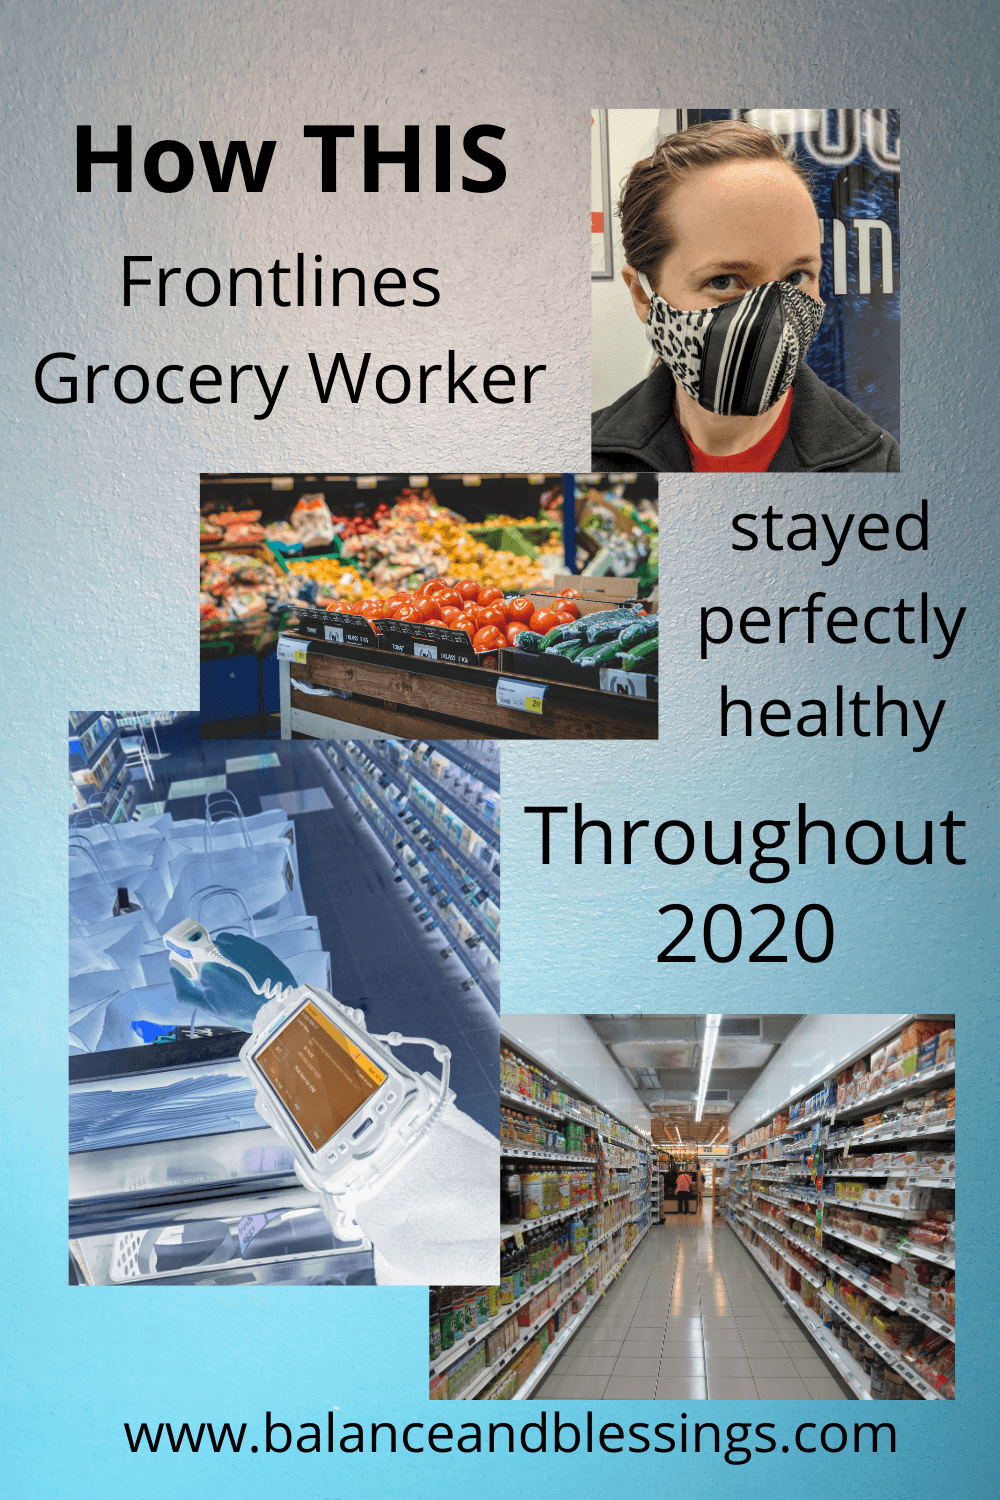 how this frontlines grocery worker stayed perfectly healthy